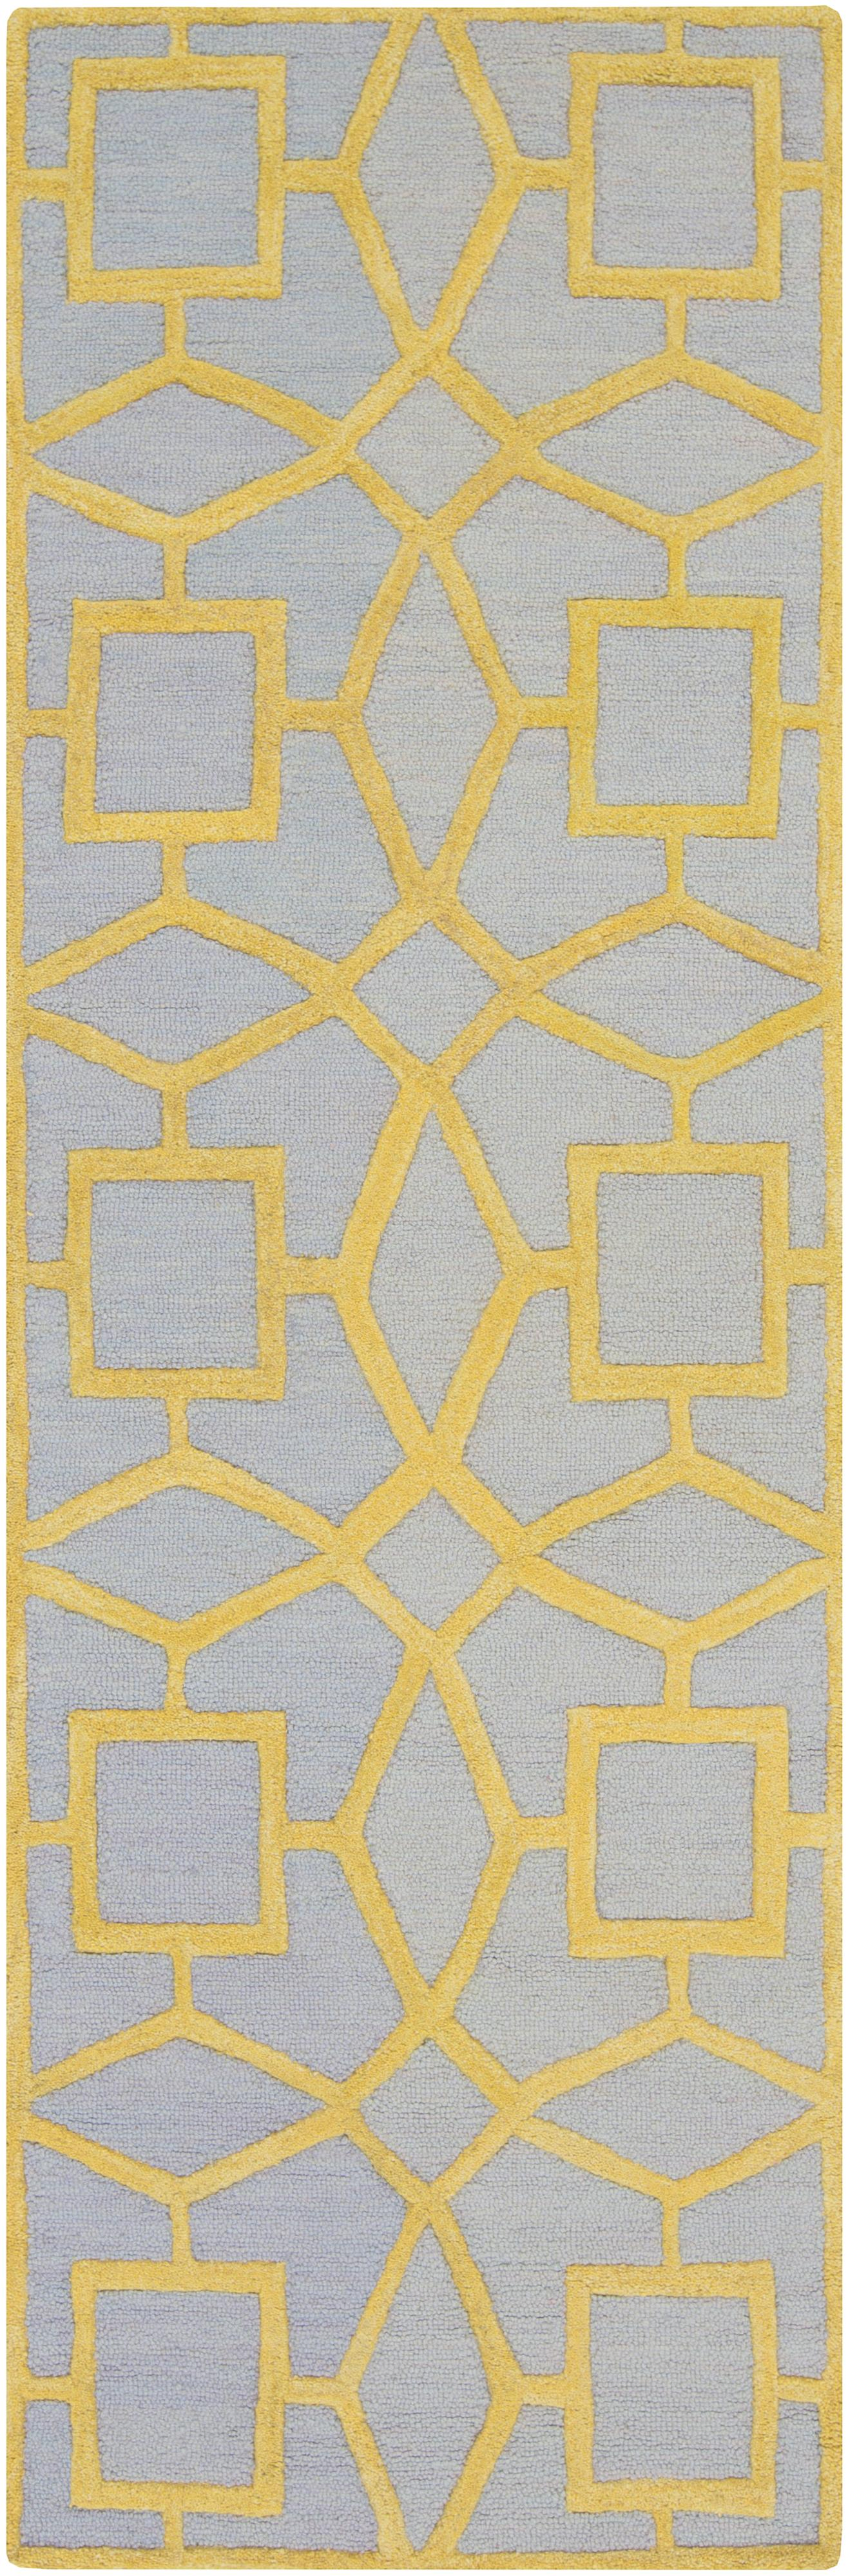 "Surya Rugs Dream 2'6"" x 8' - Item Number: DST1173-268"